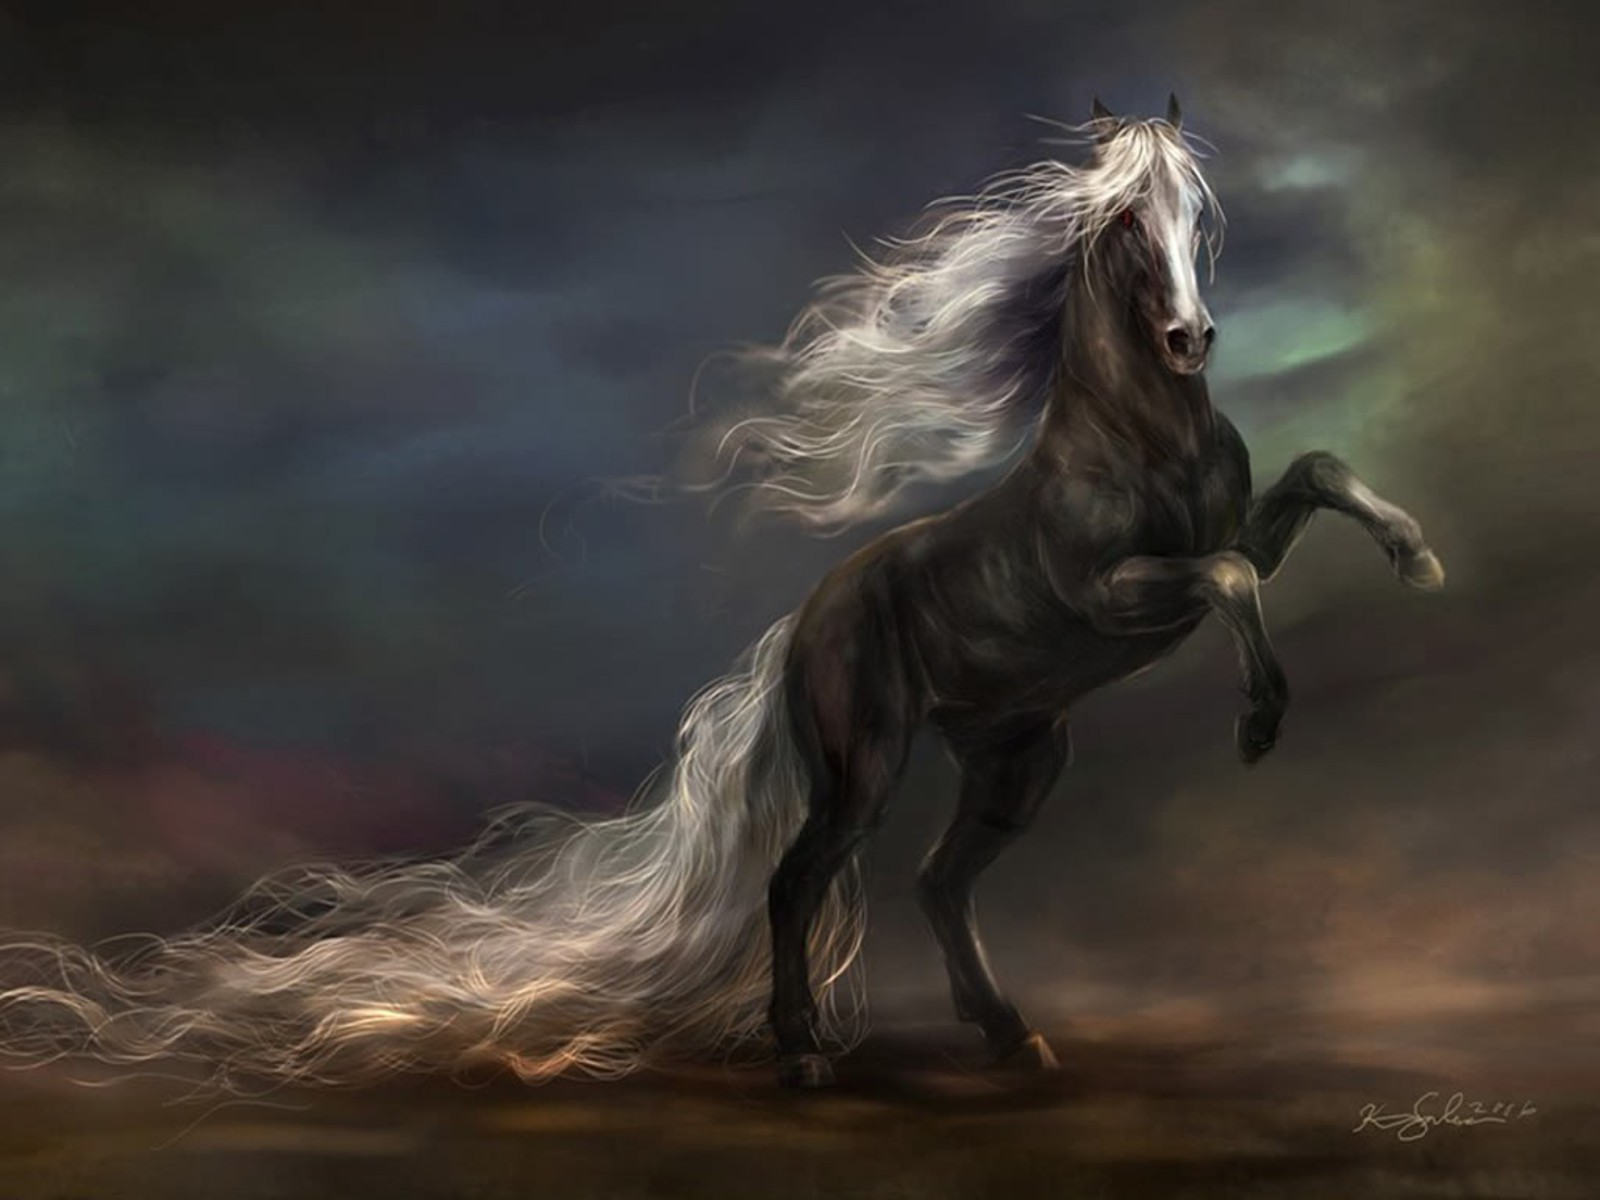 1156 Horse HD Wallpapers | Backgrounds - Wallpaper Abyss